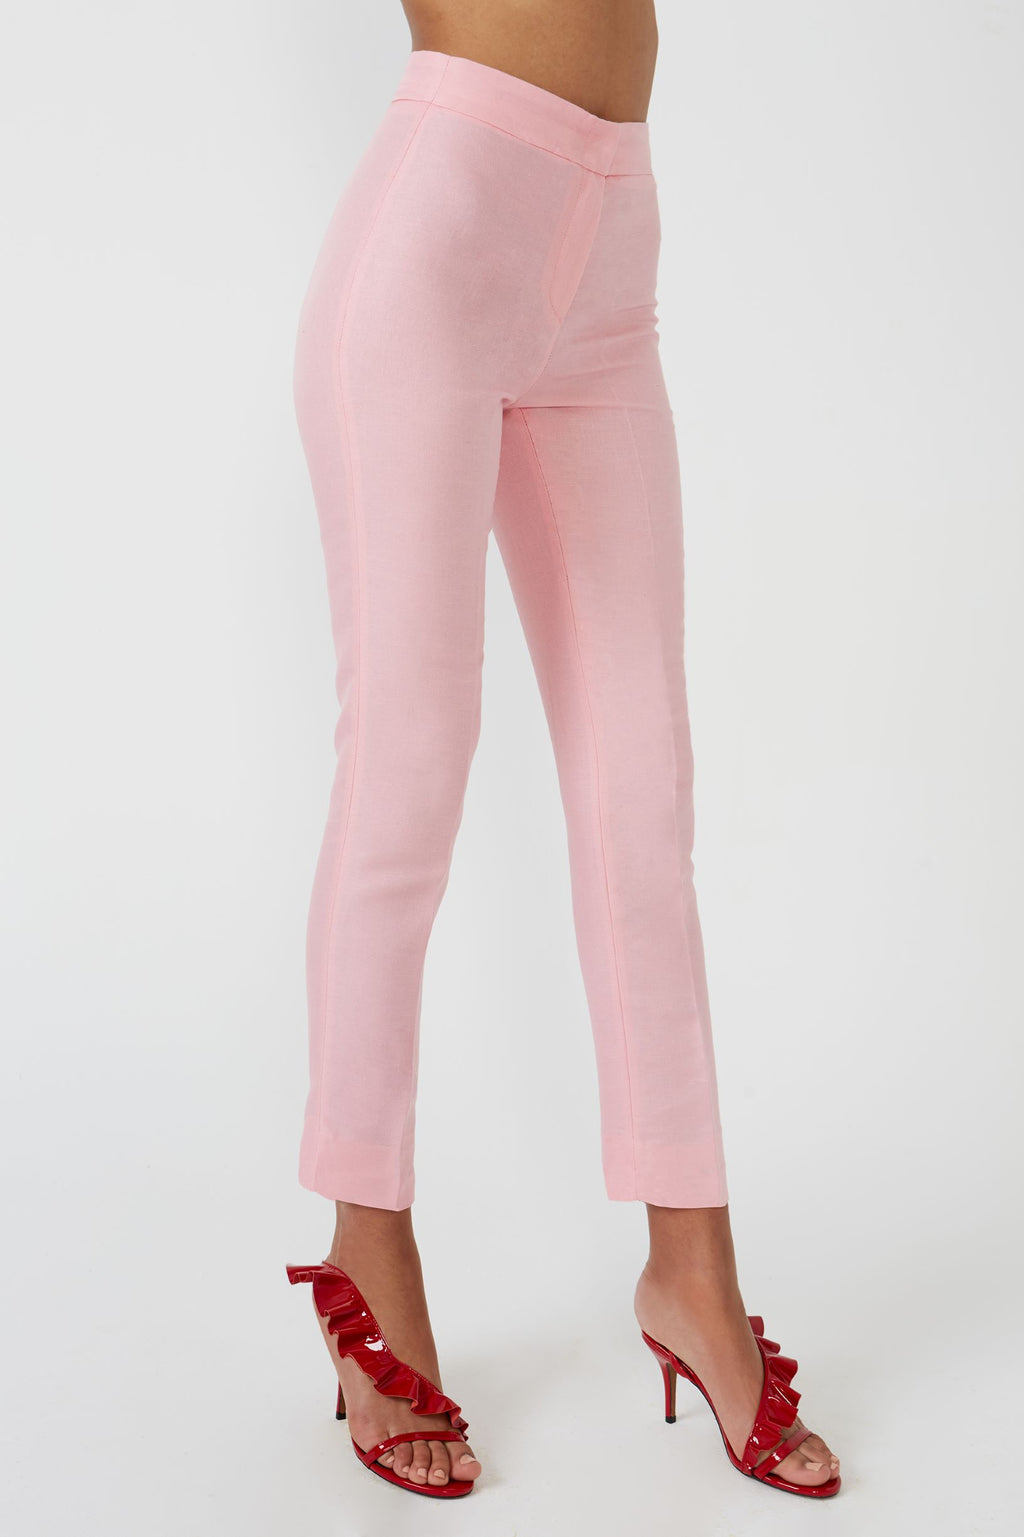 Jer pink trousers - Etxart & Panno USA